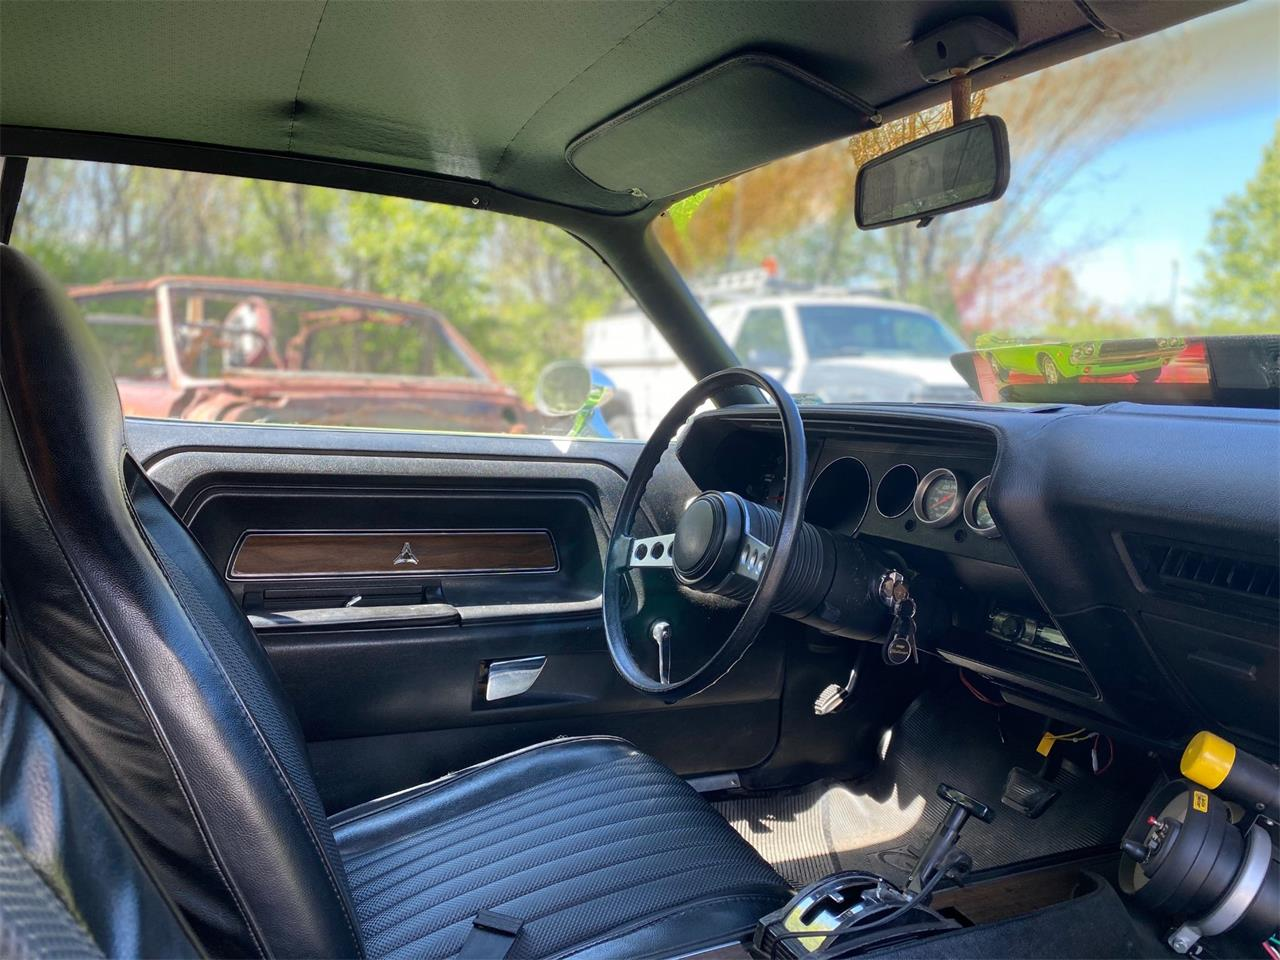 1973 Dodge Challenger (CC-1135798) for sale in Stratford, New Jersey